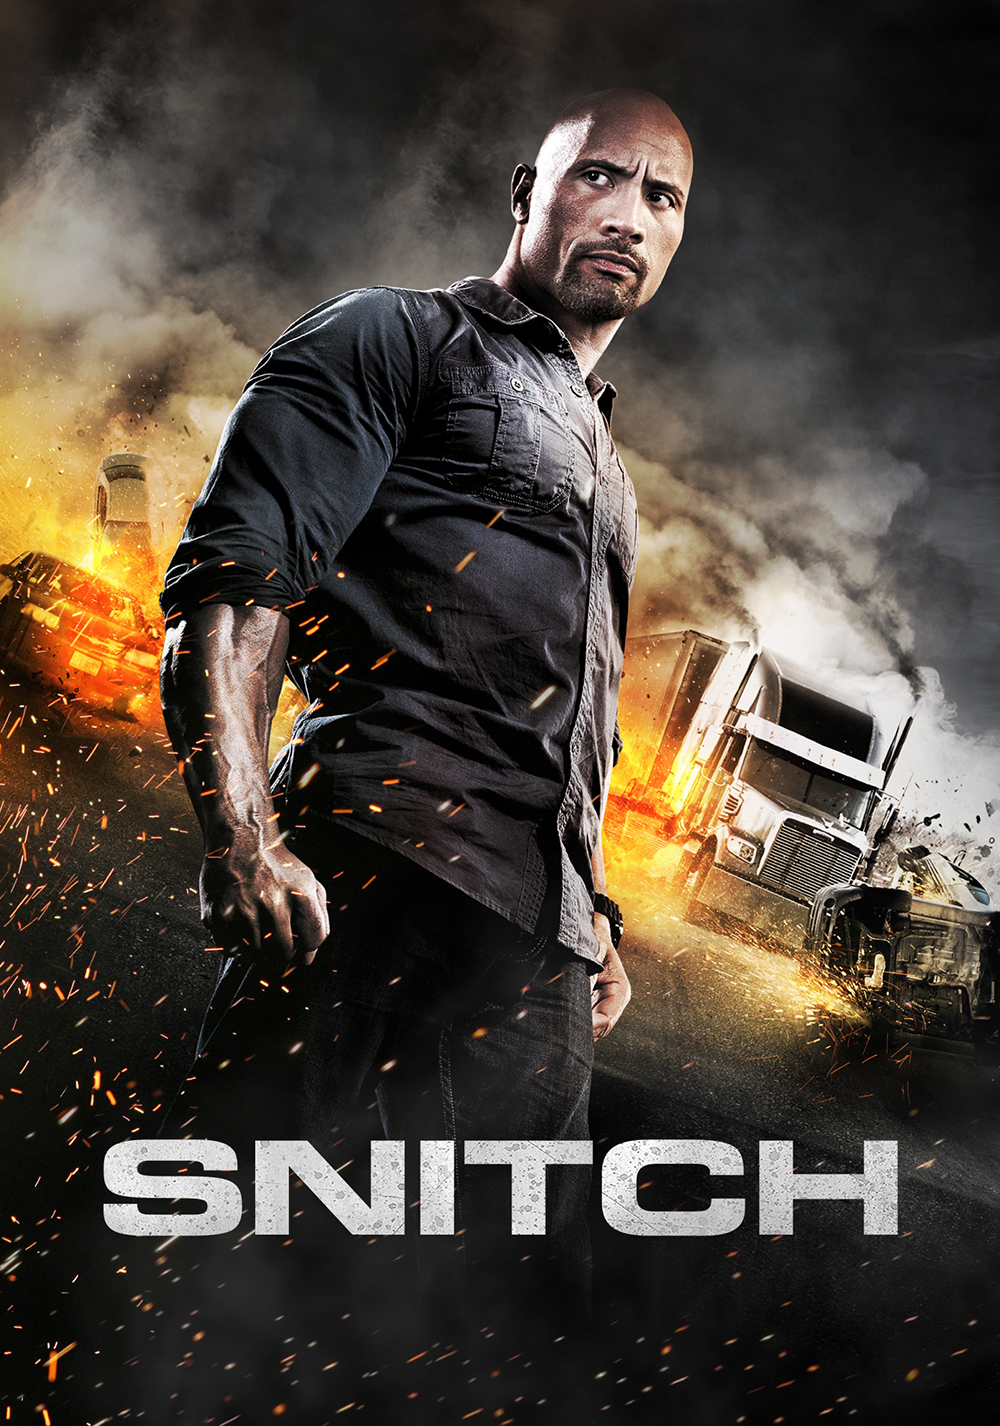 SNITCH (2013) MOVIE TAMIL DUBBED HD